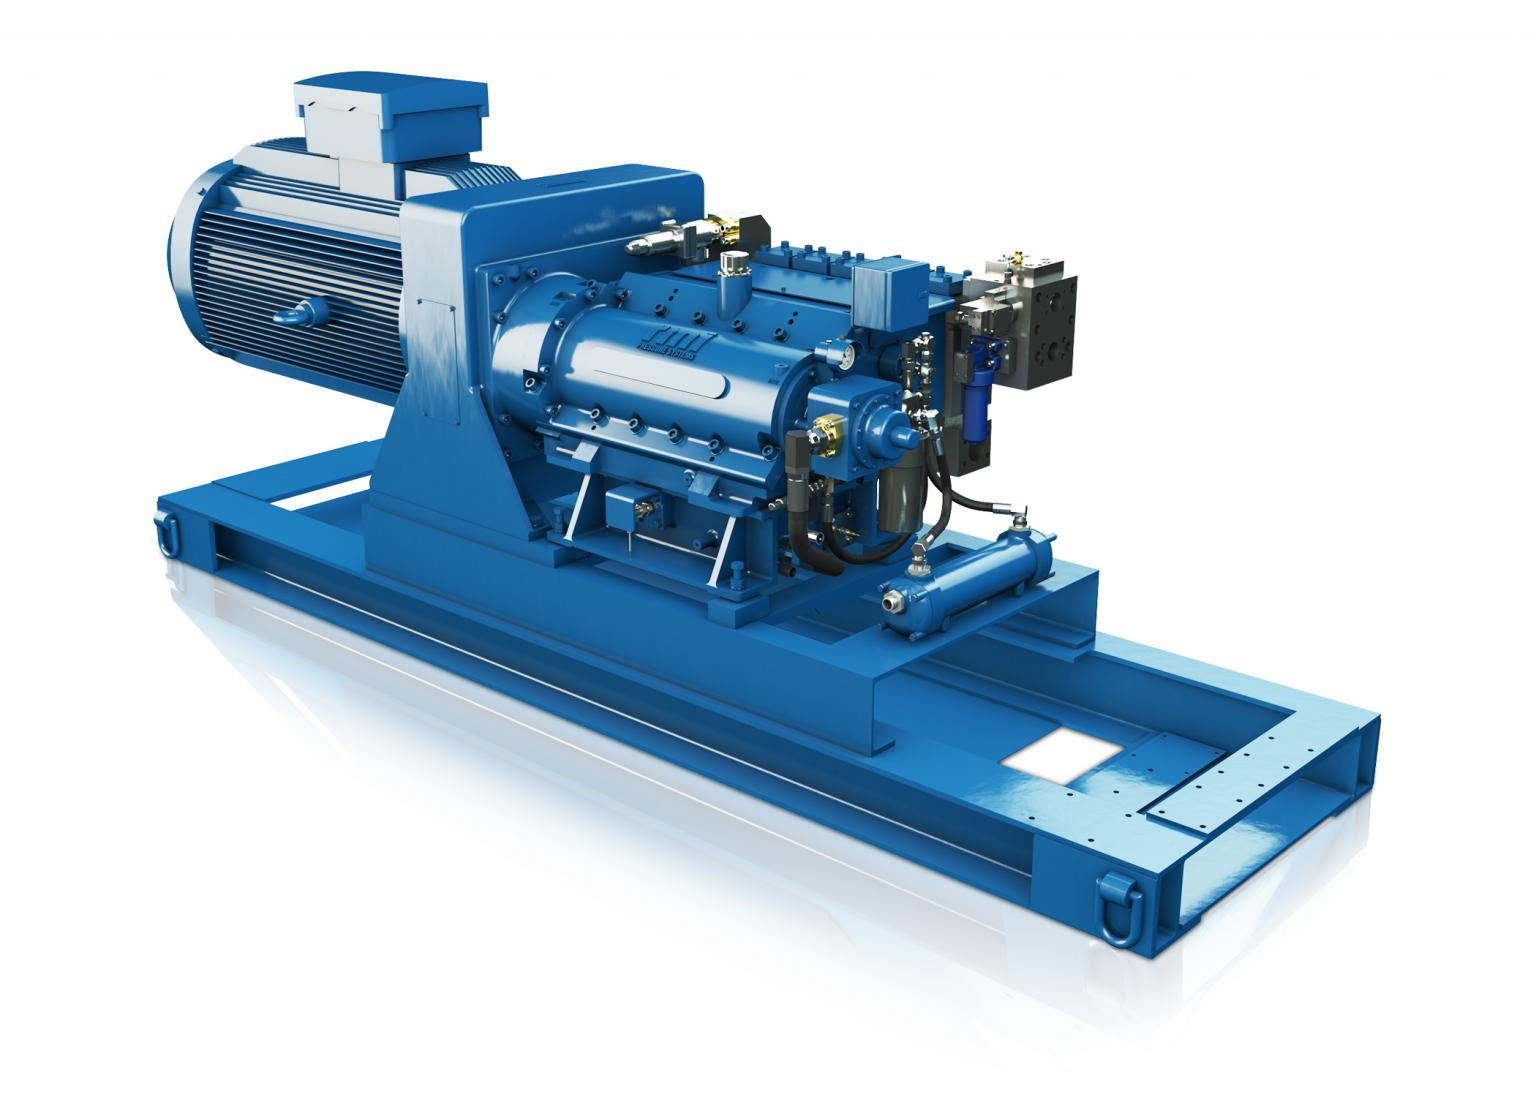 High pressure pumps, such as the S500 from RMI, provide hydraulic power to the roof support systems